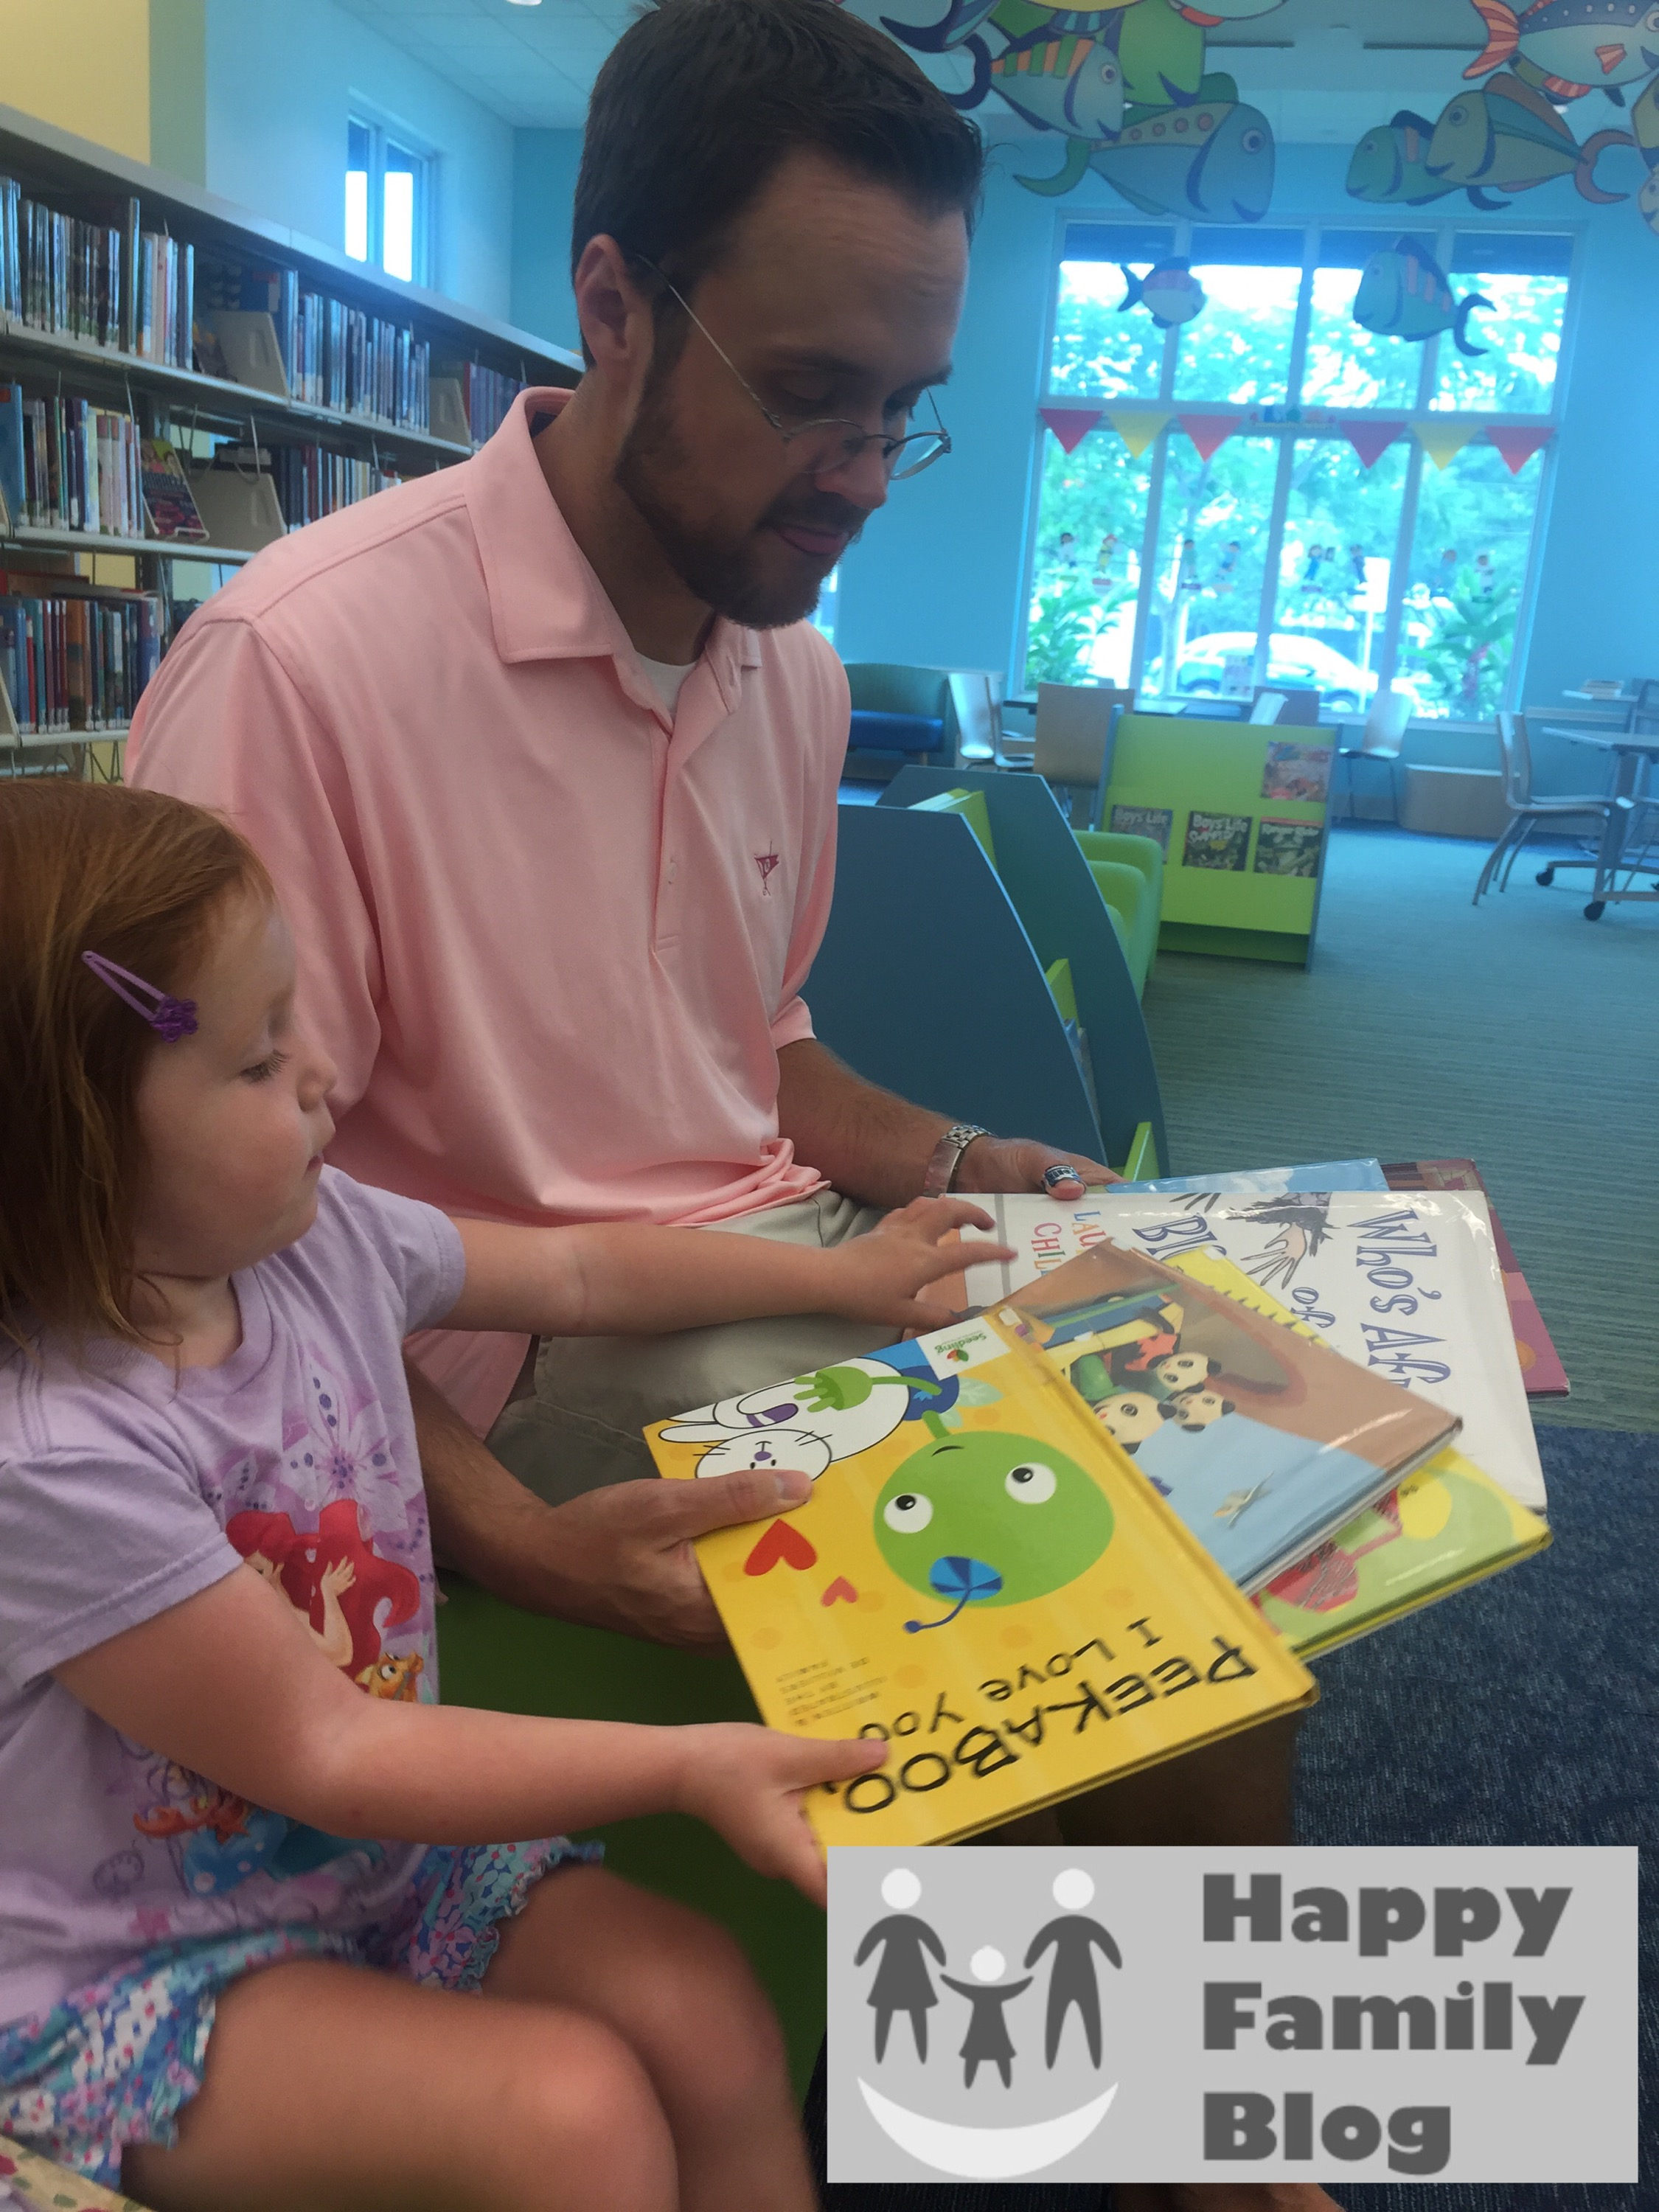 Picking out Library Books with Happy Family Blog